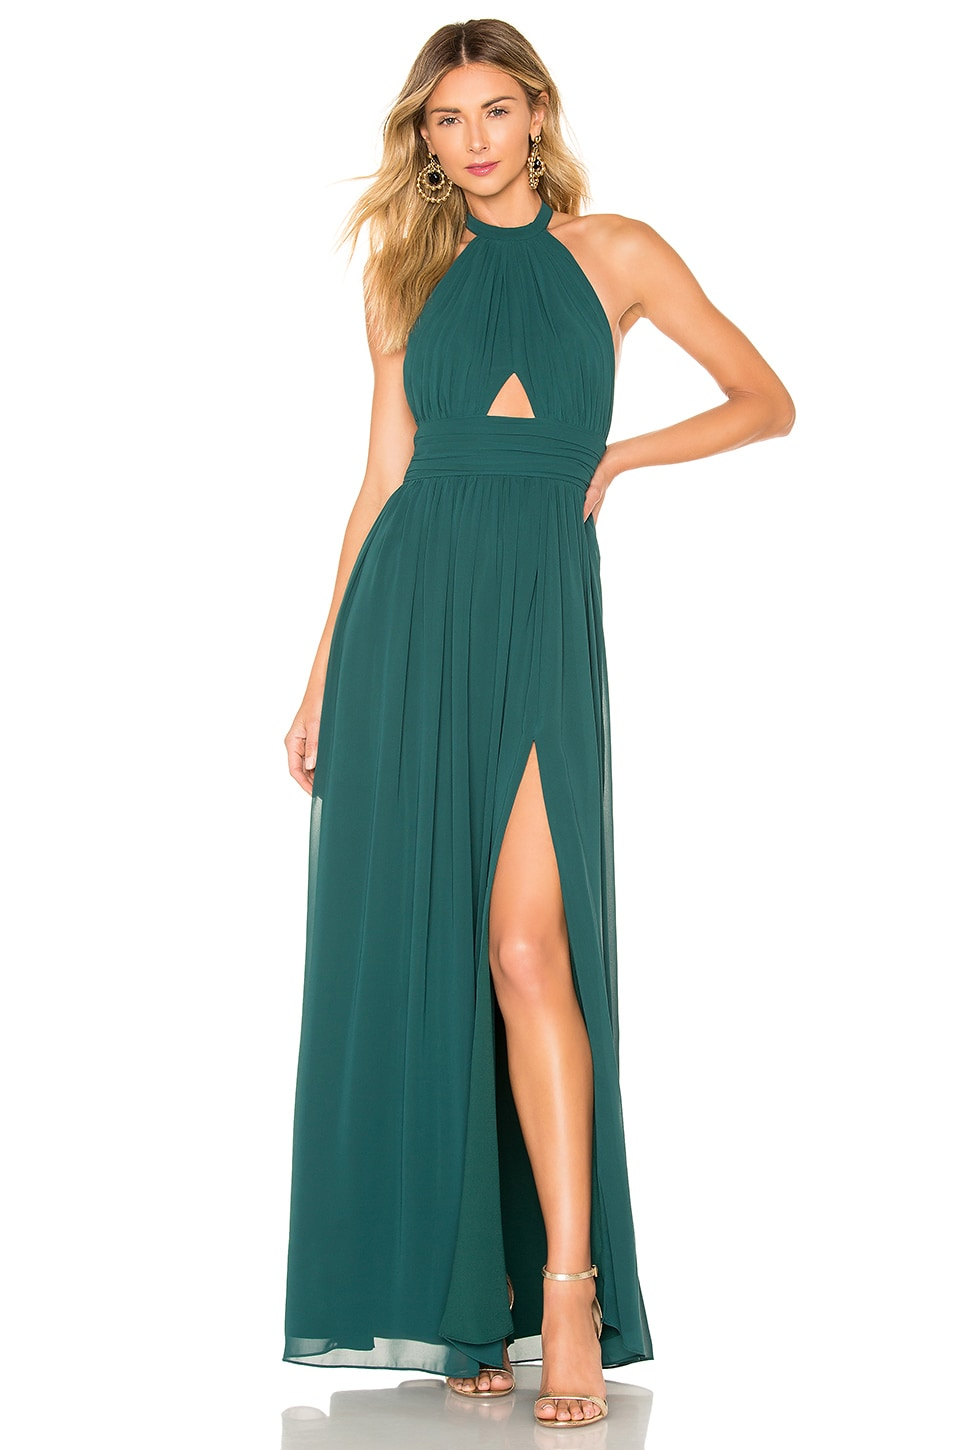 Lovers + Friends Hazel Gown in Emerald